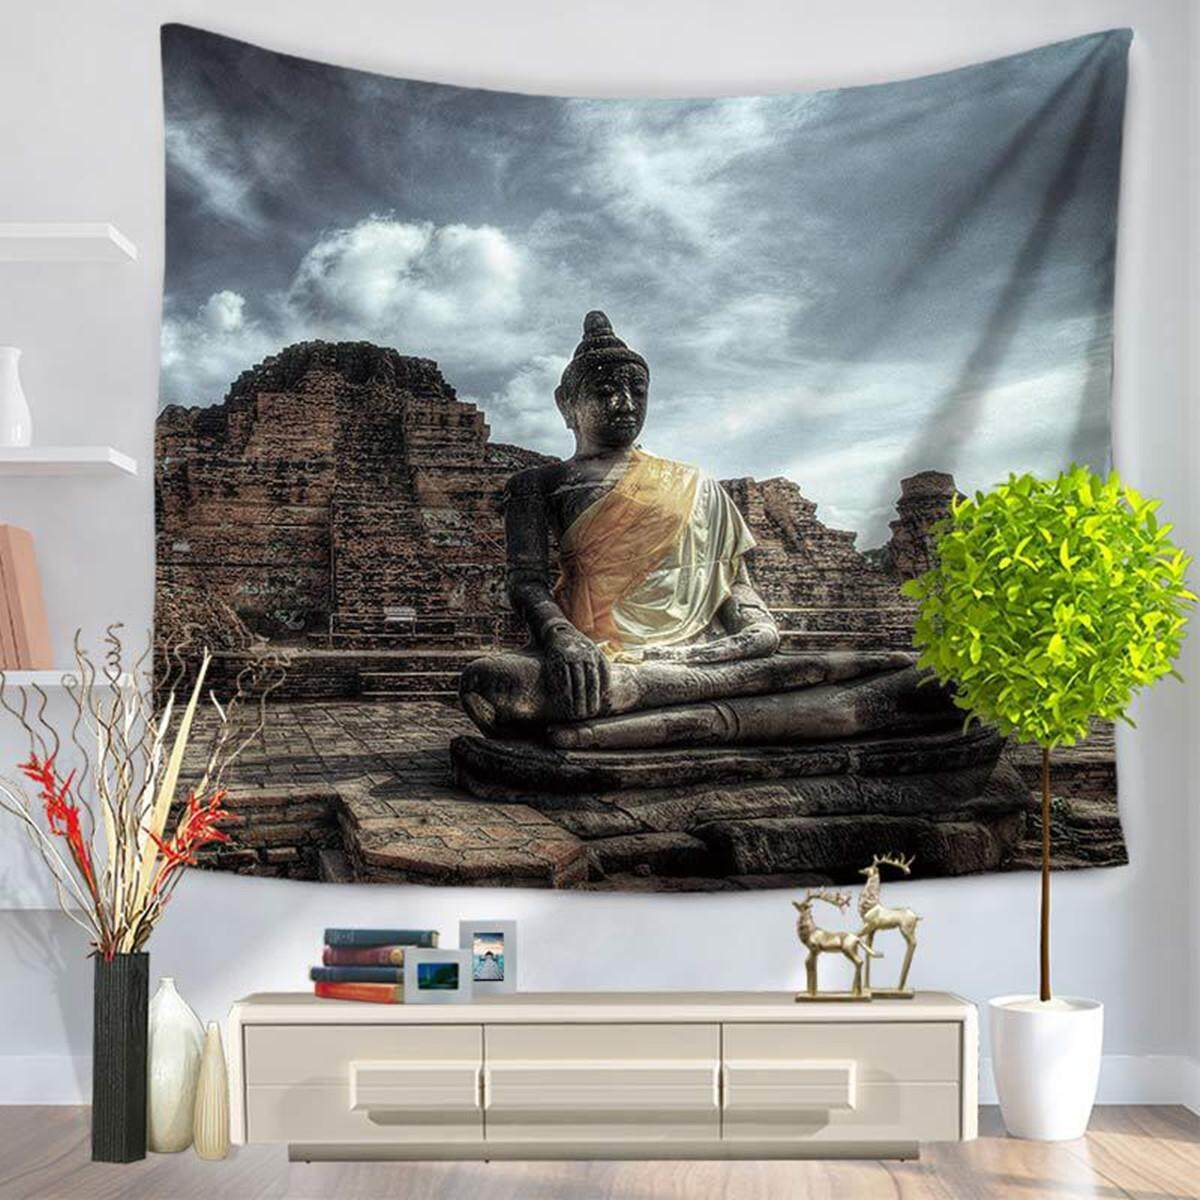 150x130cm Buddha Statue Tapestry Wall Hanging Bedspread Picnic Mat Throw Decor